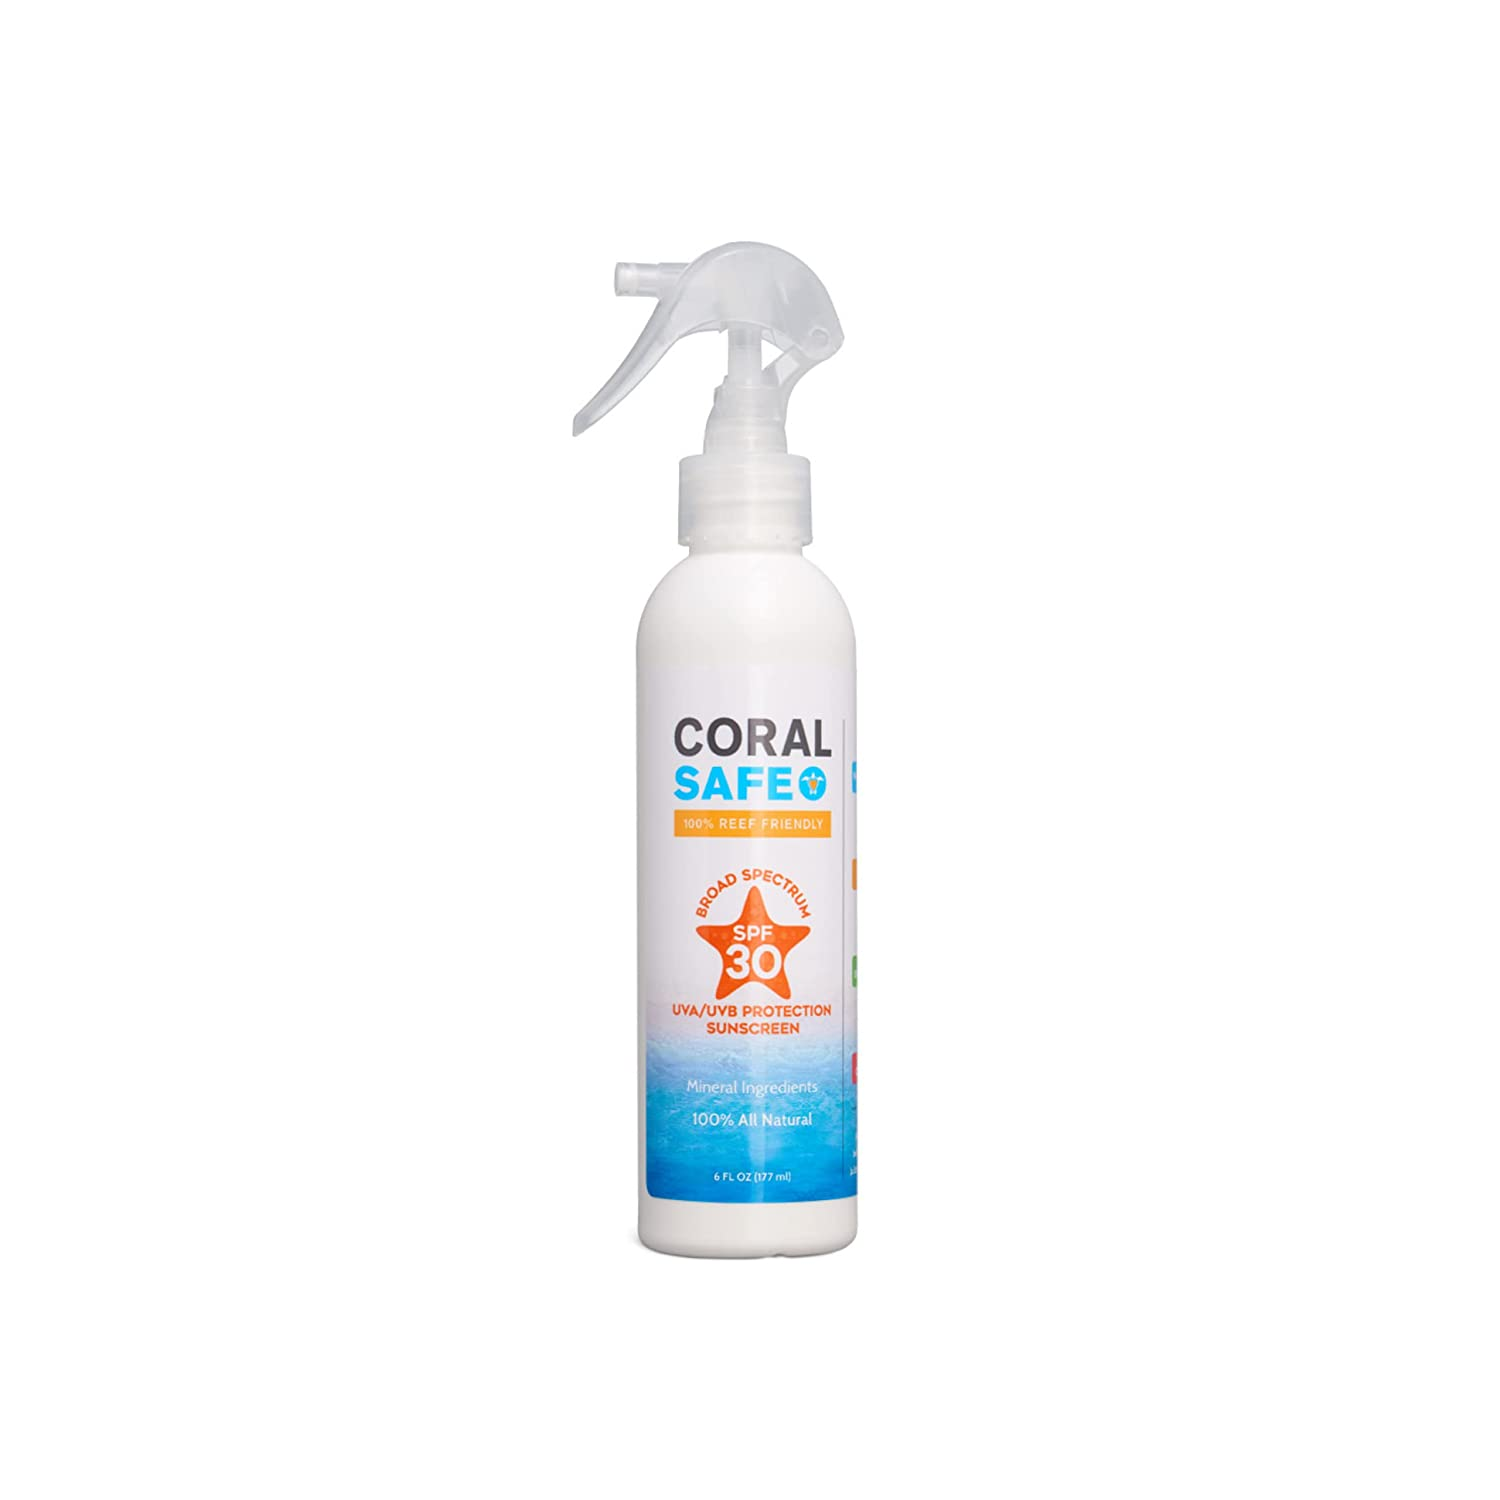 Coral Safe Natural SPF 30 Mineral Sunscreen Spray